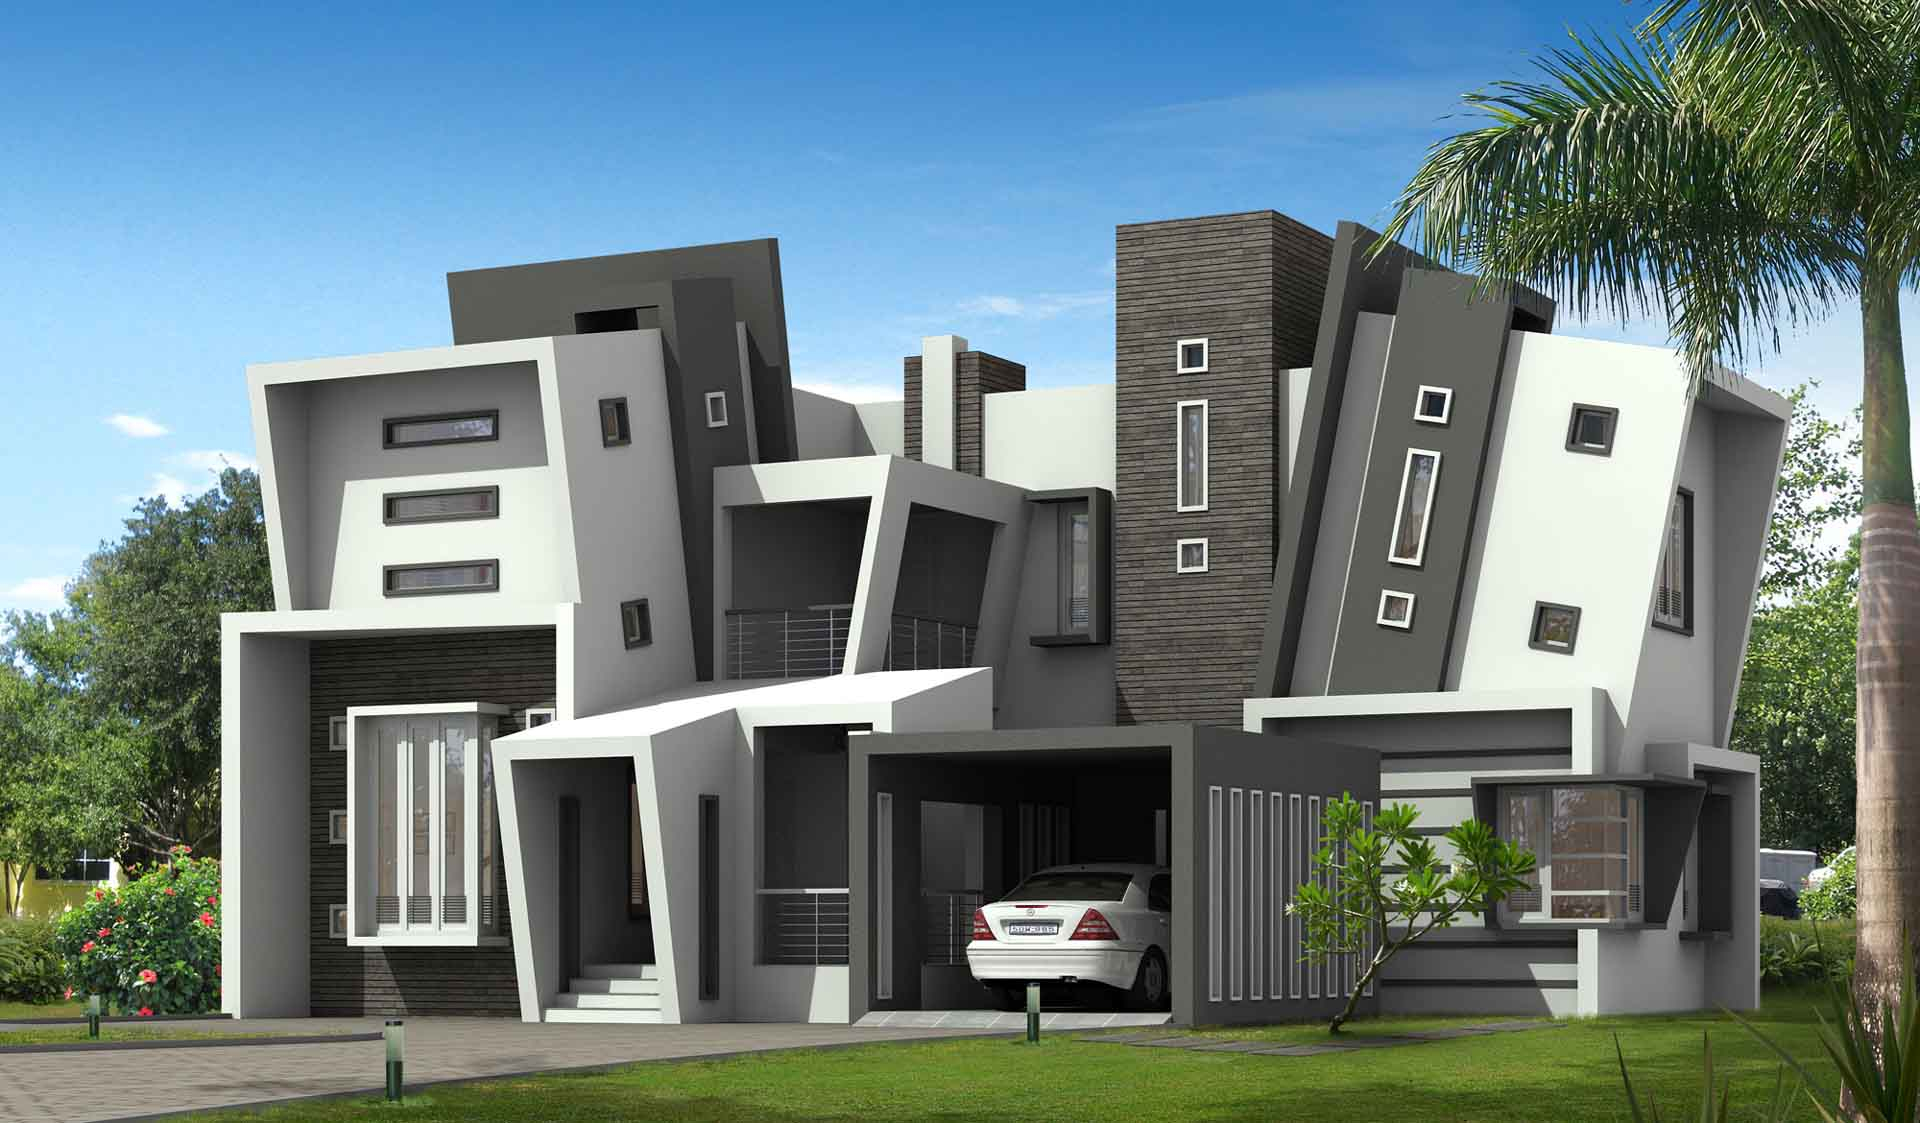 Lovely Latest Modern Houses House Beach Small Plans Big New Most Best Cool inside Elegant Latest Modern Houses